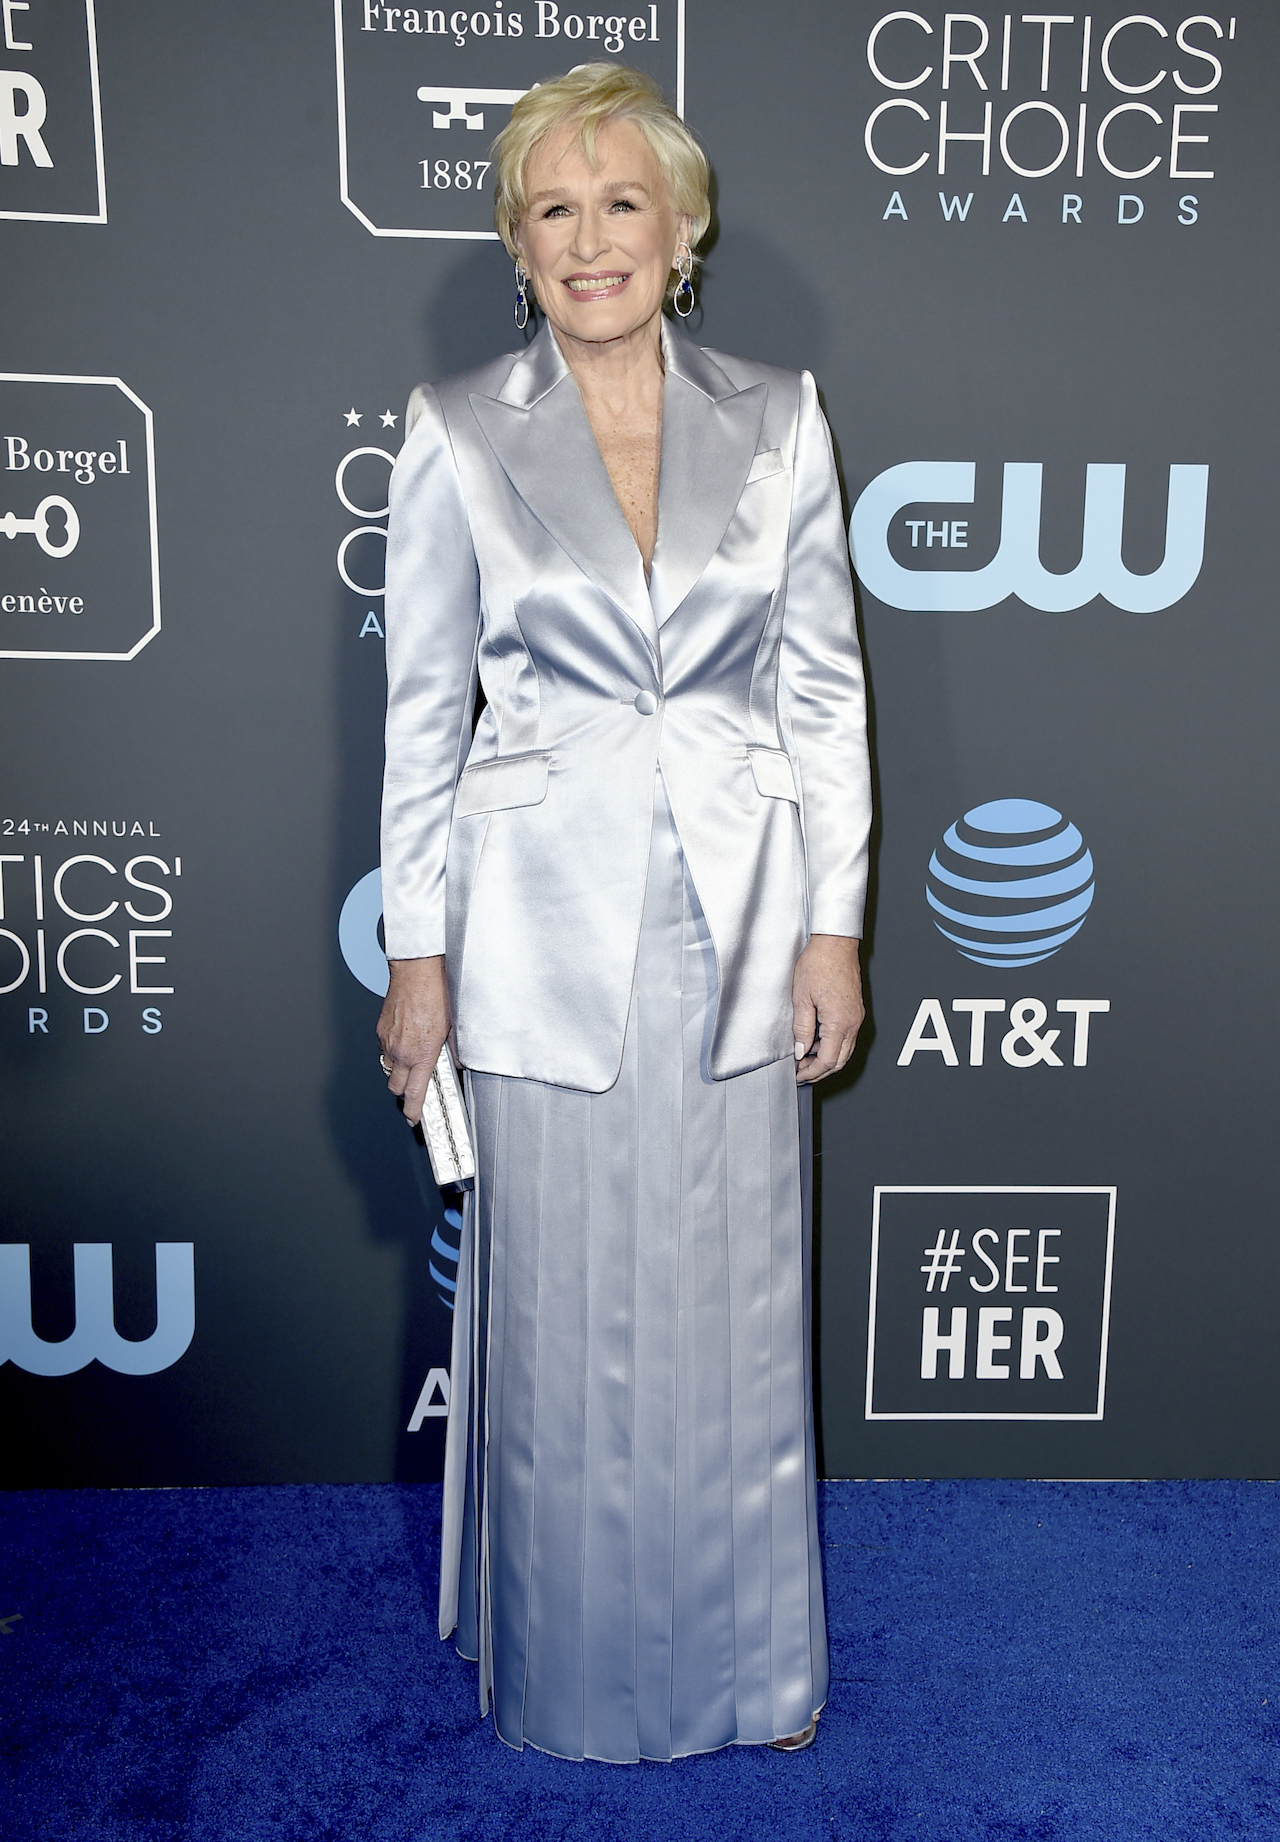 "<div class=""meta image-caption""><div class=""origin-logo origin-image ap""><span>AP</span></div><span class=""caption-text"">Glenn Close arrives at the 24th annual Critics' Choice Awards on Sunday, Jan. 13, 2019, at the Barker Hangar in Santa Monica, Calif. (Jordan Strauss/Invision/AP)</span></div>"